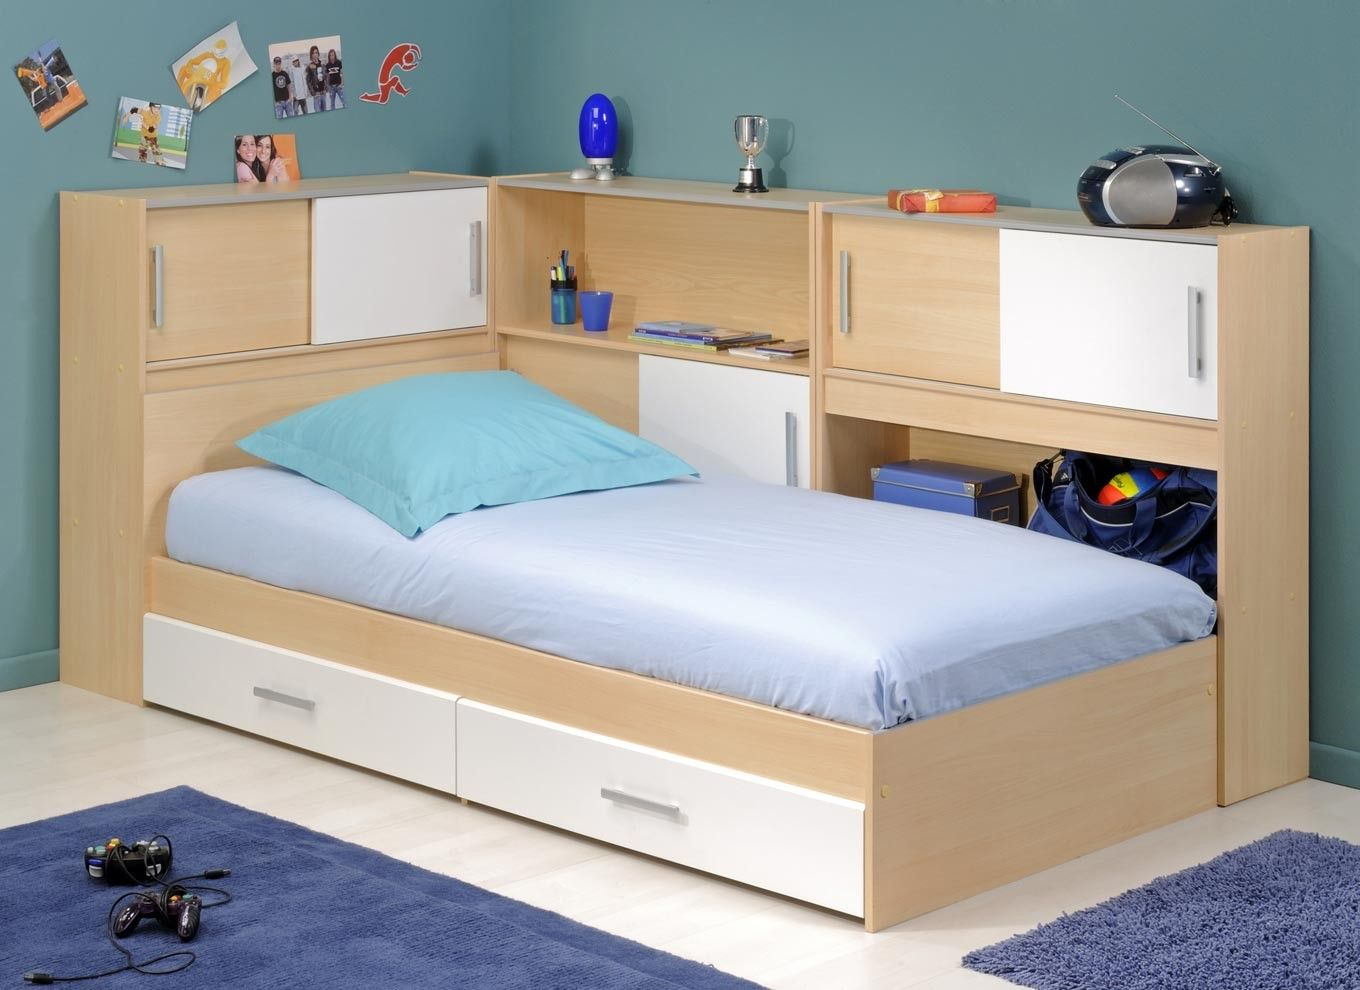 Snoop Single Bedstead With Side Storage Bed frame with